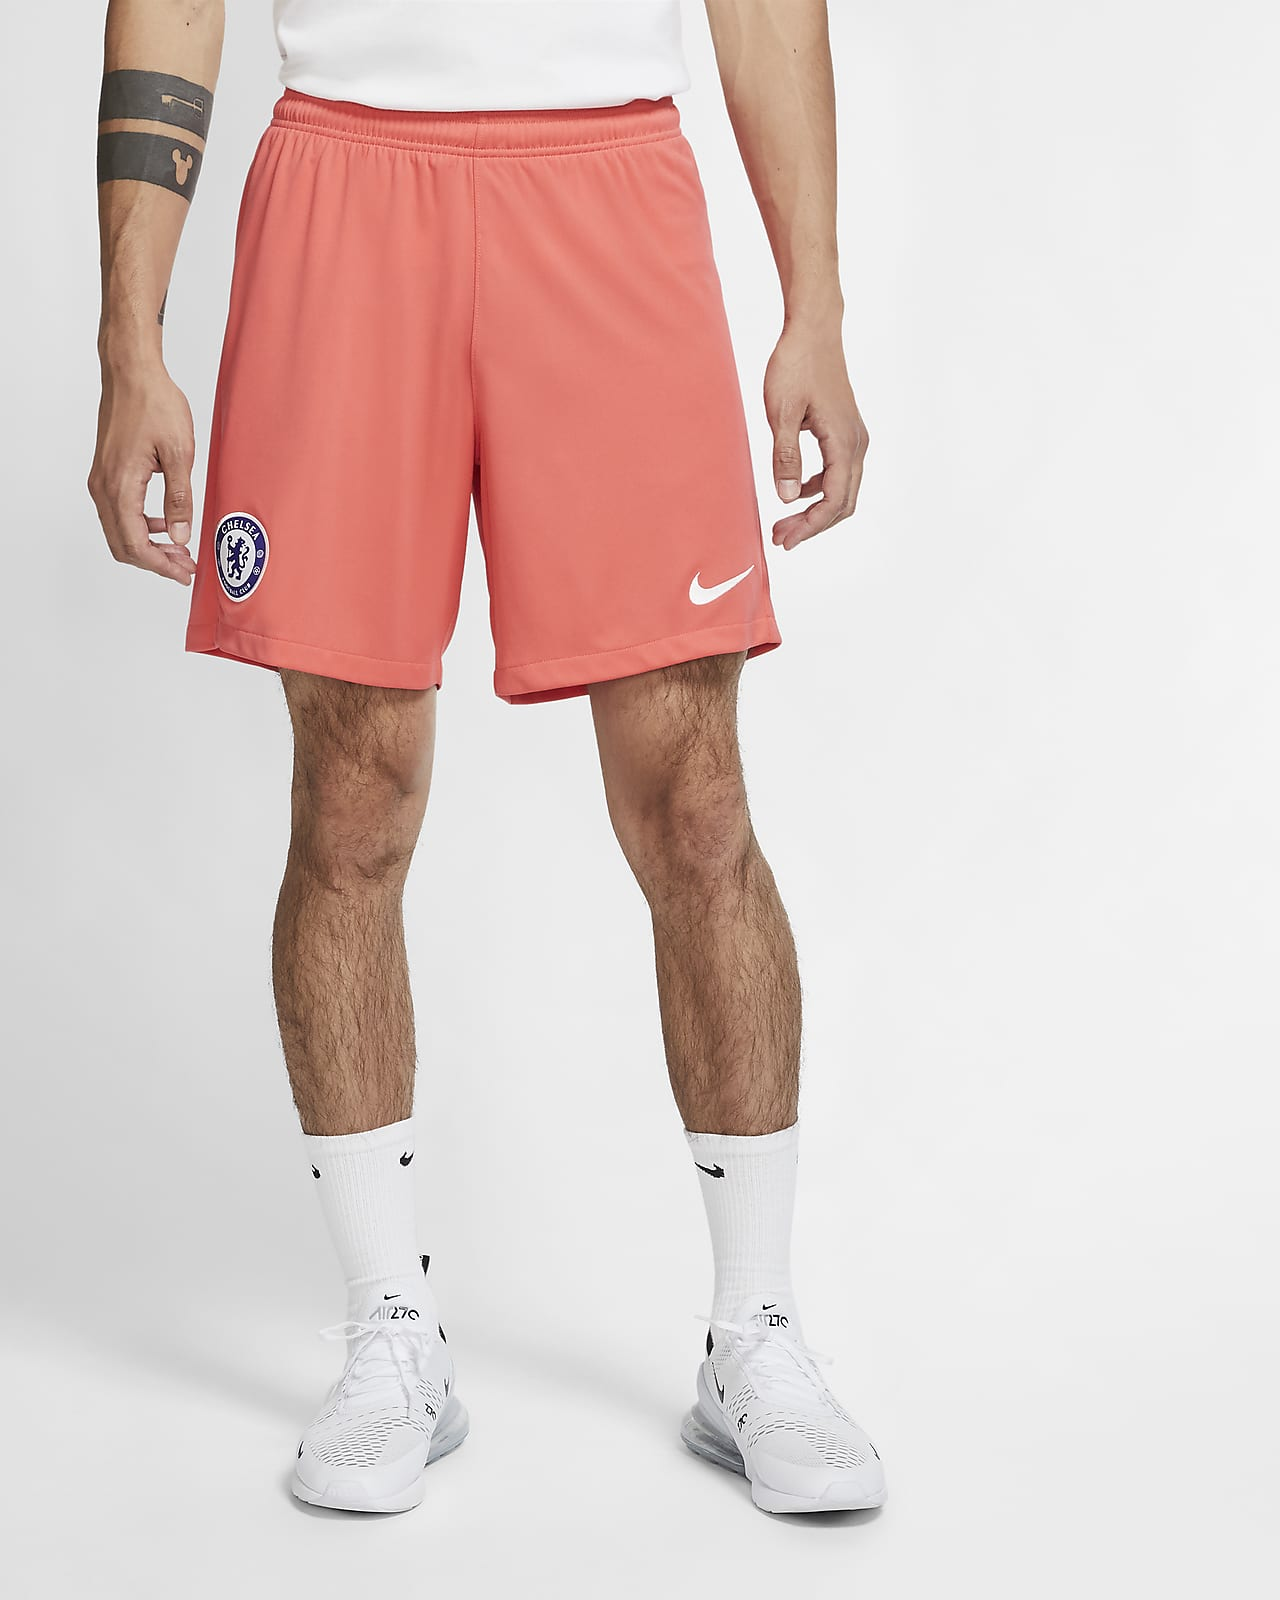 3e short de football Chelsea FC 2020/21 Stadium pour Homme